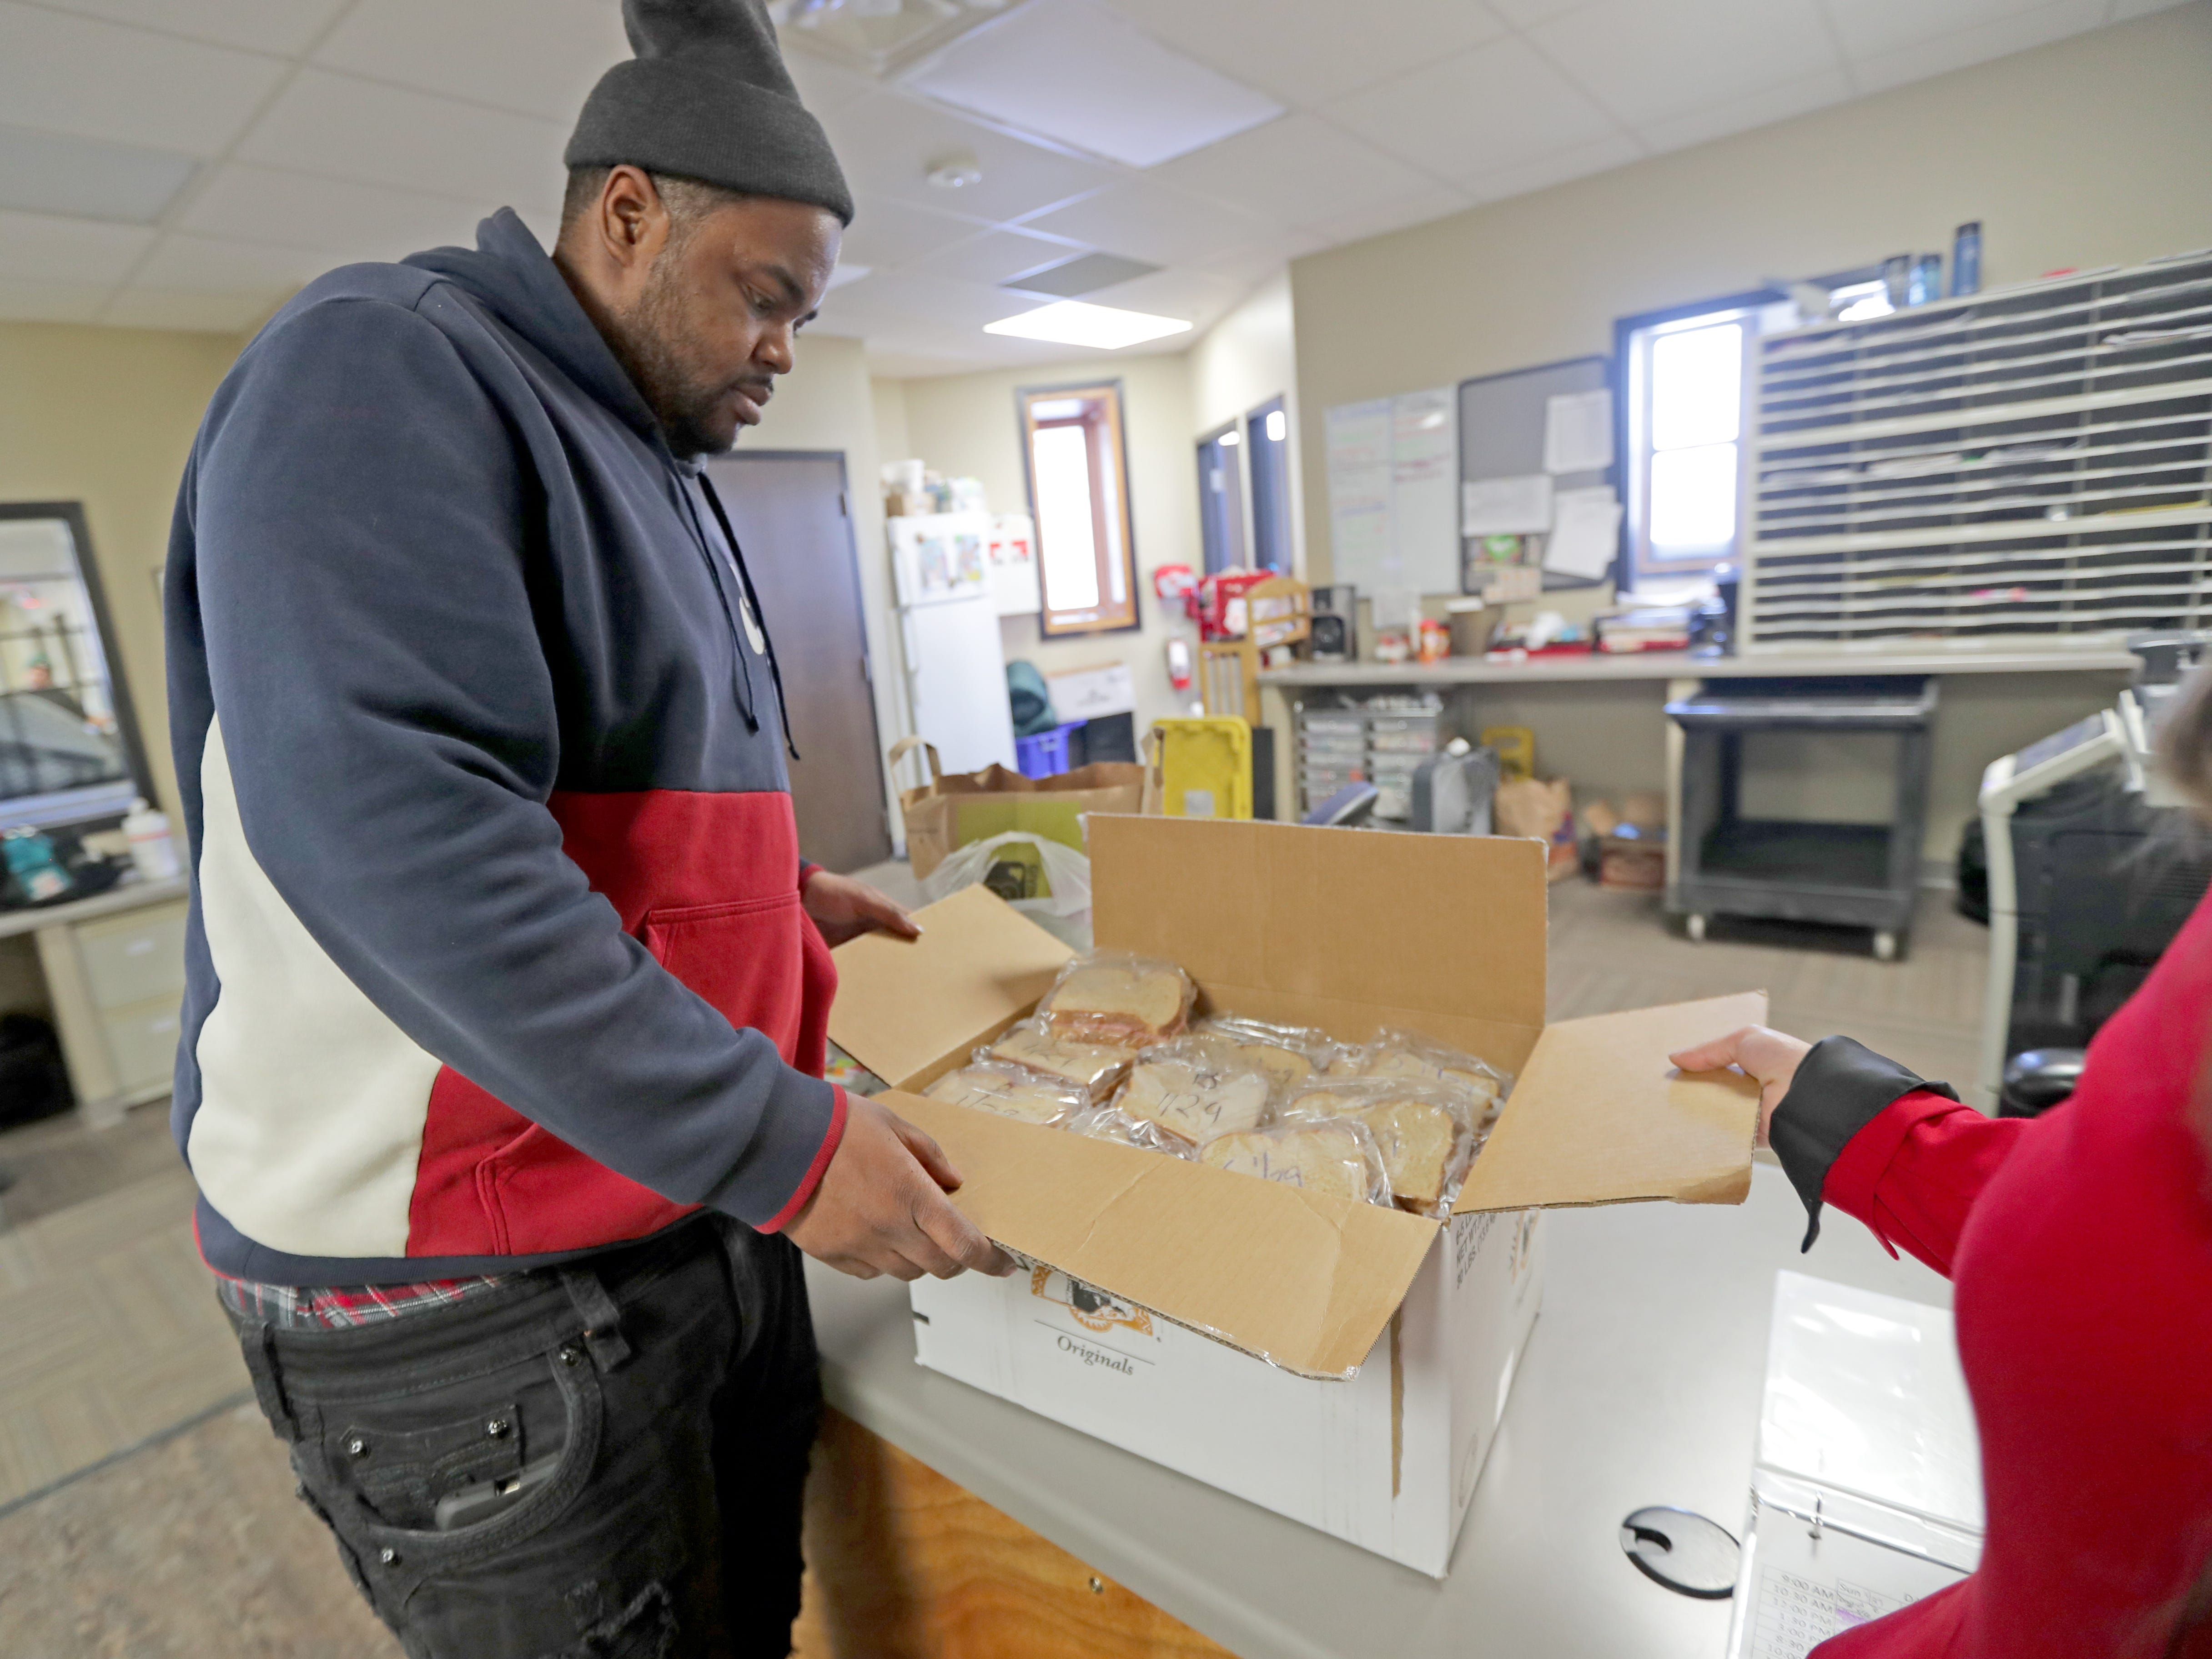 Guest House of Milwaukee employee William Love gets sandwiches ready for  those who need it at the facility on North 13th Street in Milwaukee.